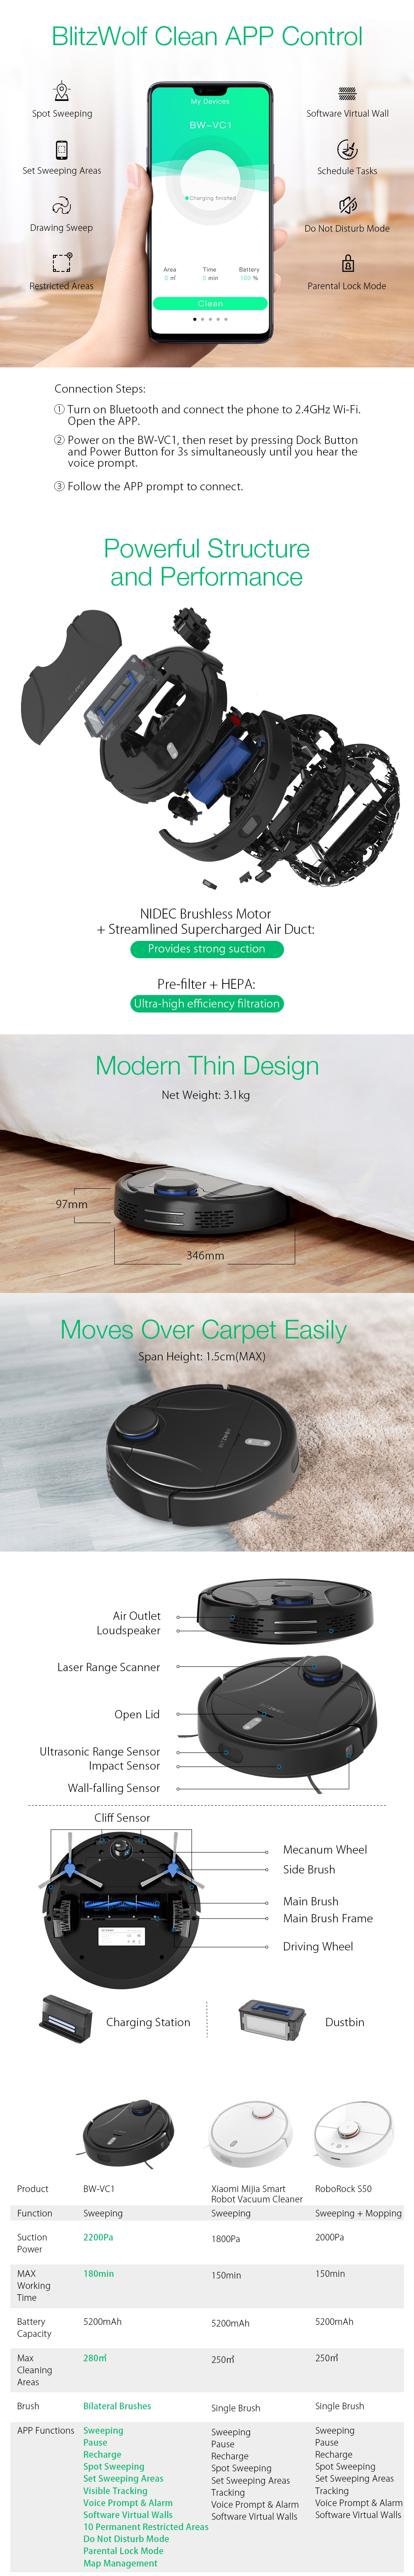 BlitzWolf® BW-VC1 Smart Robot Vacuum Cleaner LSD Laser Navigation, 2200Pa Strong Suction, 5200mAh Battery, APP Remote Control, Super Quiet, Self-Charging, 360°Anti-Collision & Anti Drop, Carpet & Hard